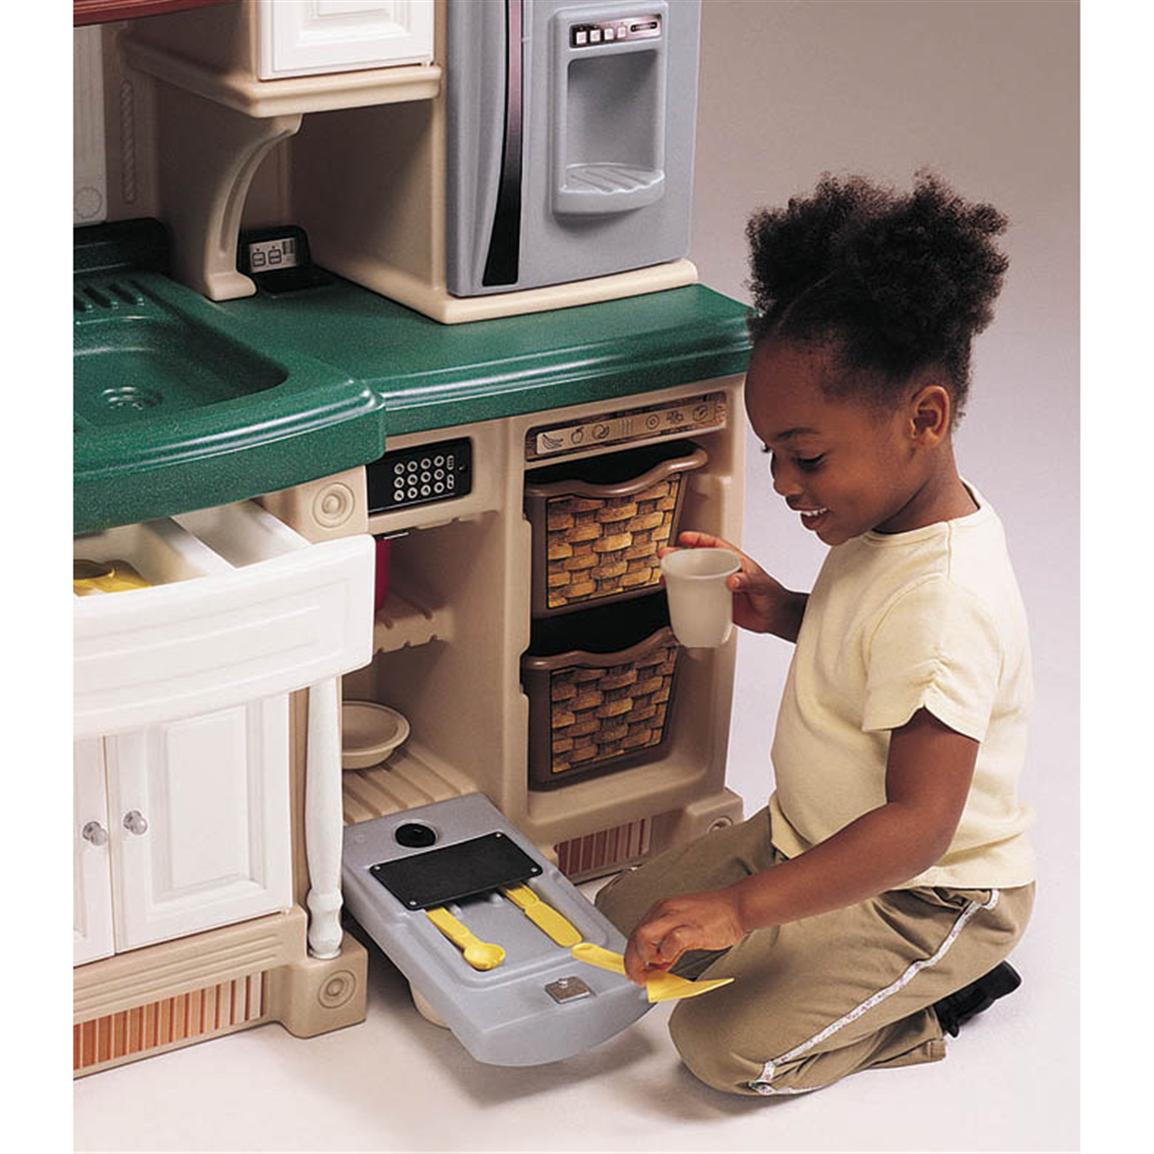 Make sure this fits by entering your model number.; The kids kitchen playset toy comes with six realistic electronic features that enhance interactive play such as microwave, stainless steel oven, dishwasher, stove top, cordless telephone and overhead light.